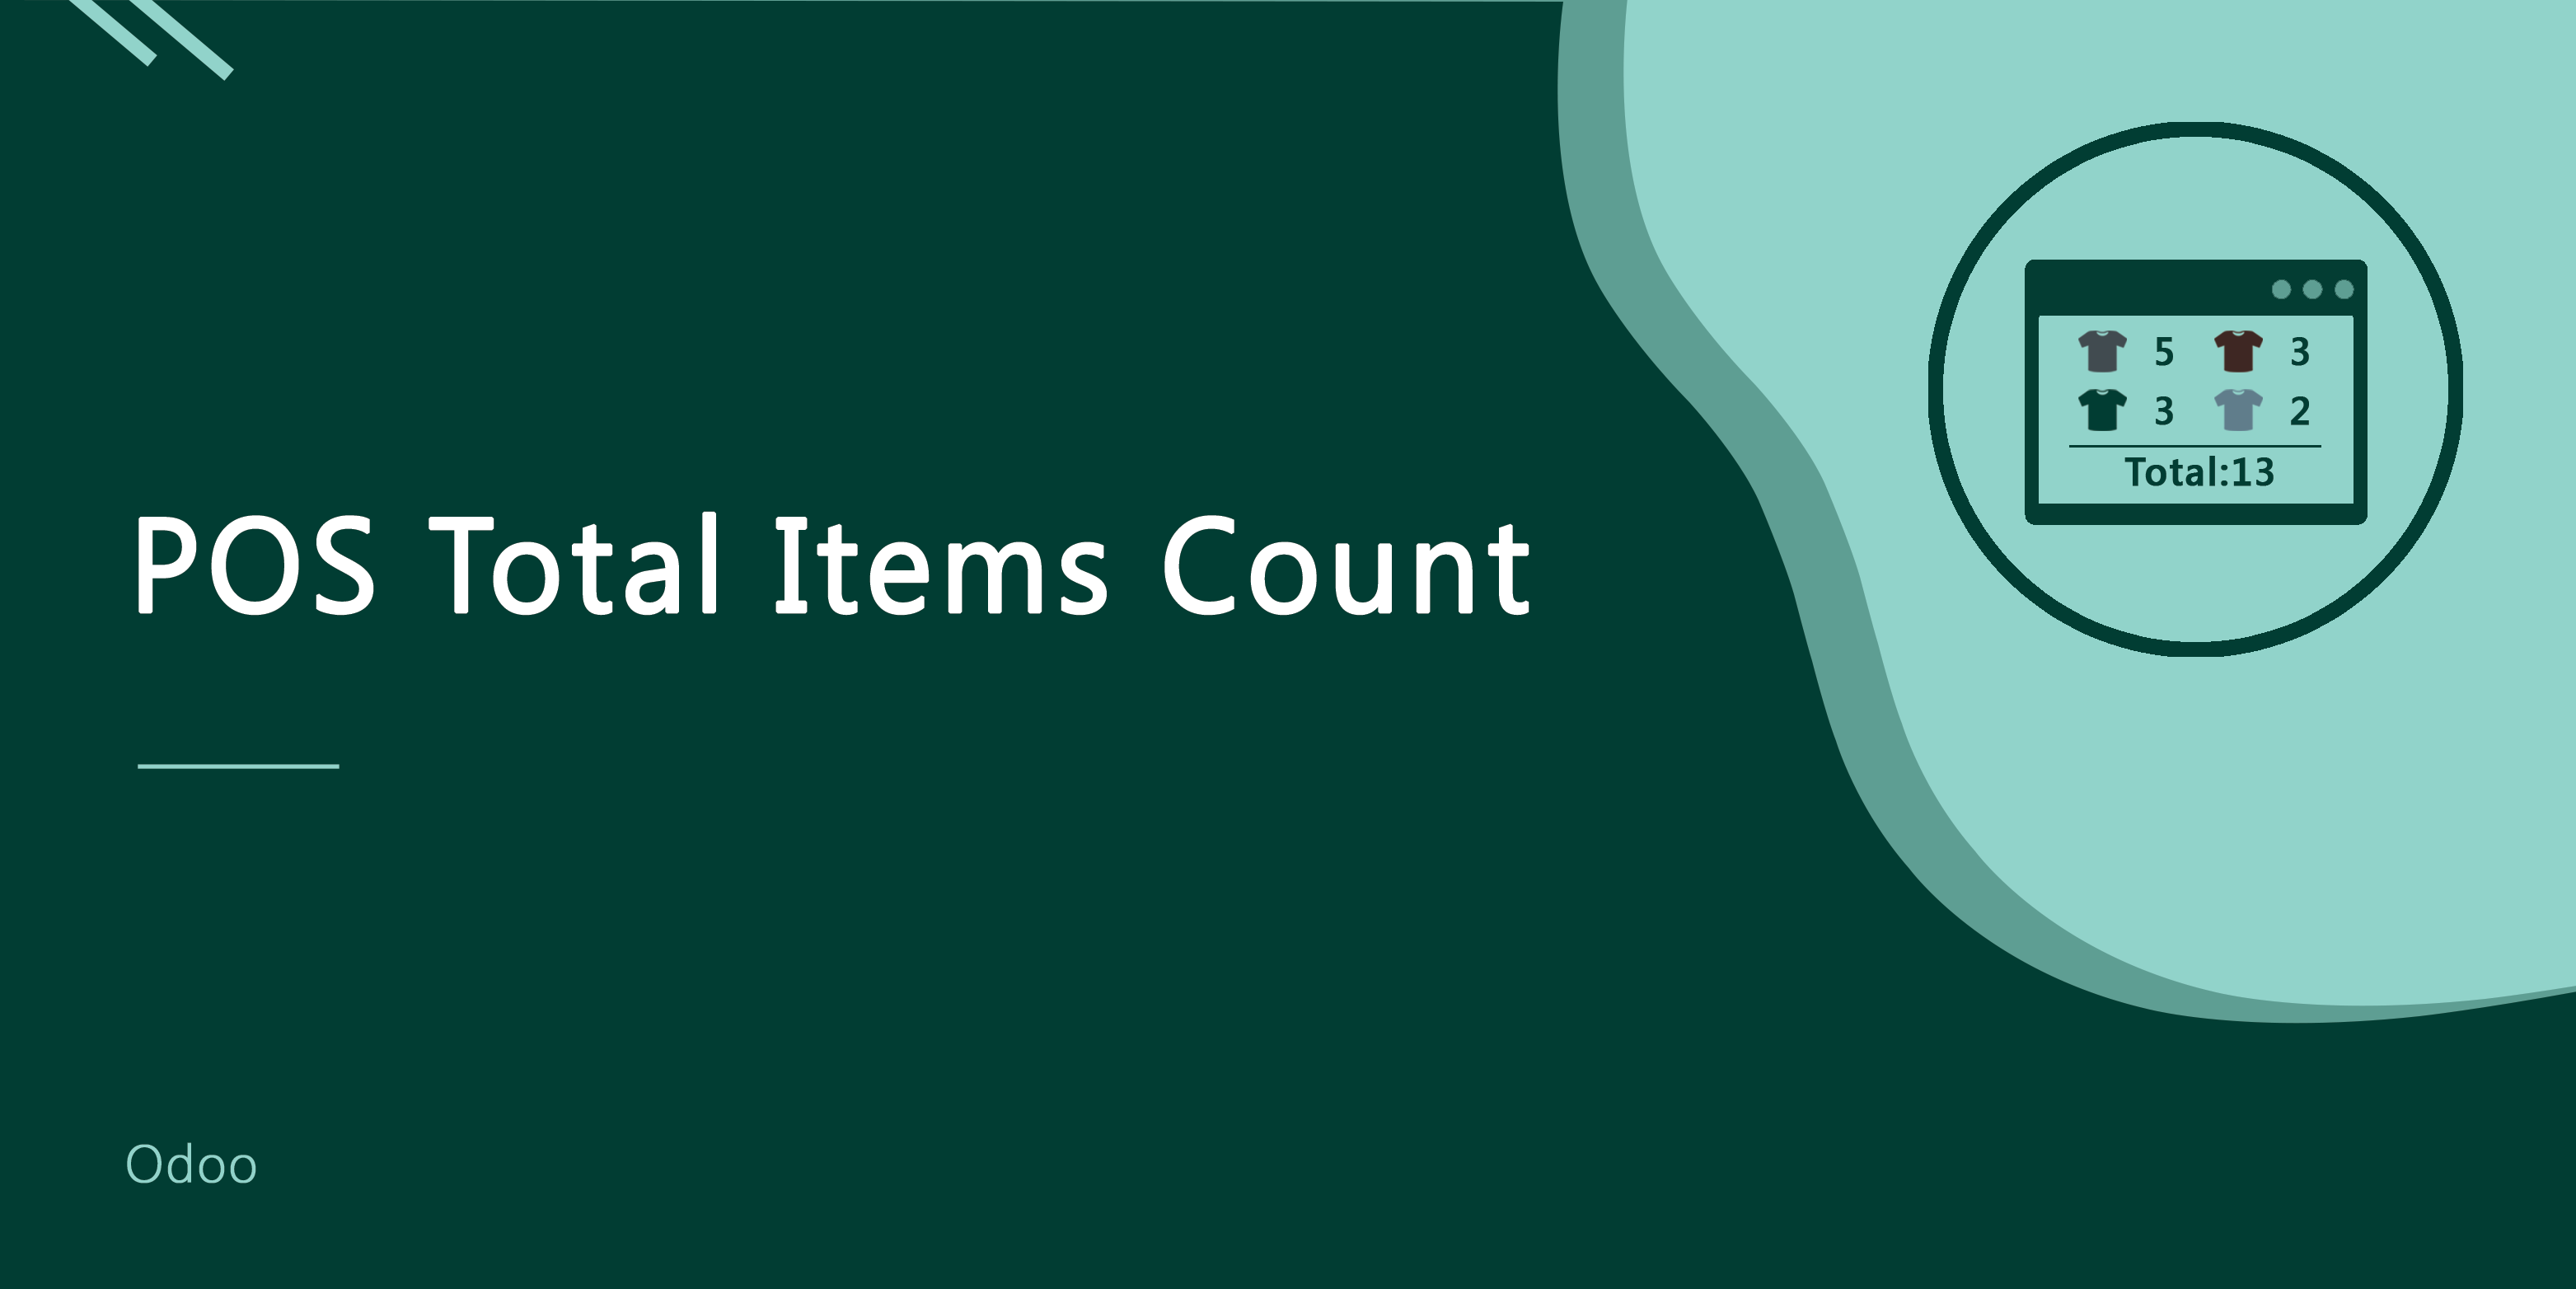 POS Total Items Count